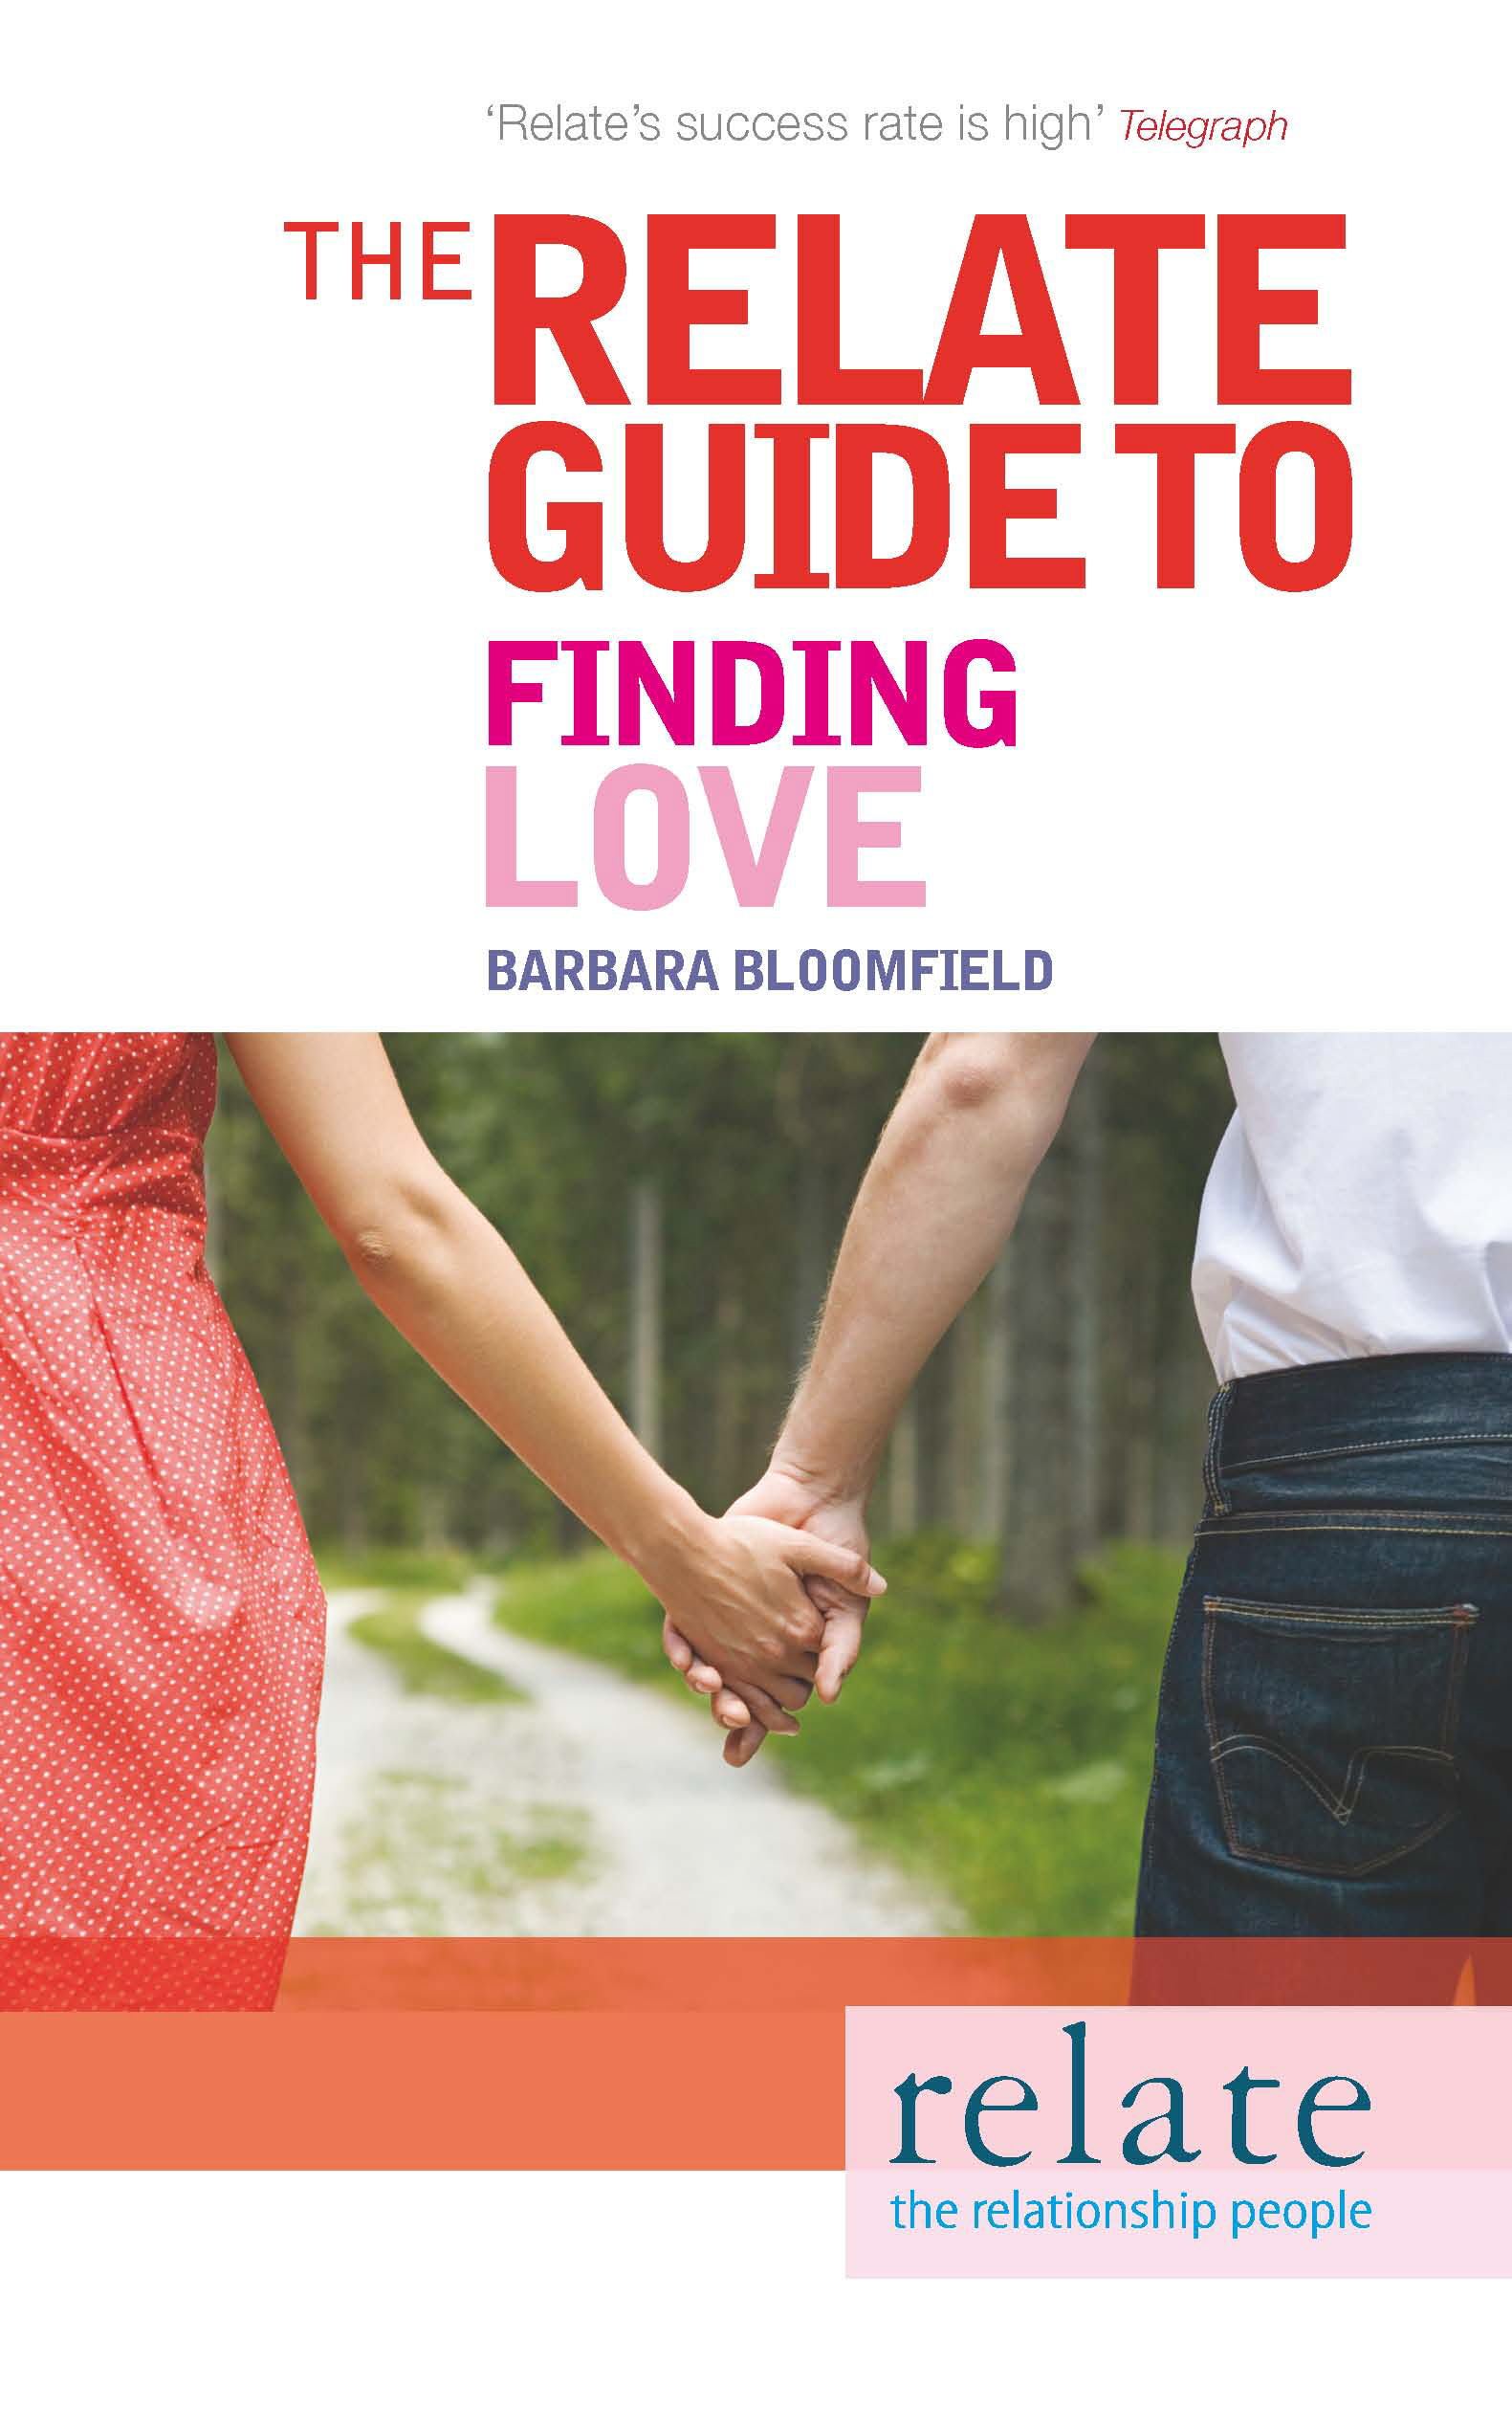 The Relate Guide to Finding Love